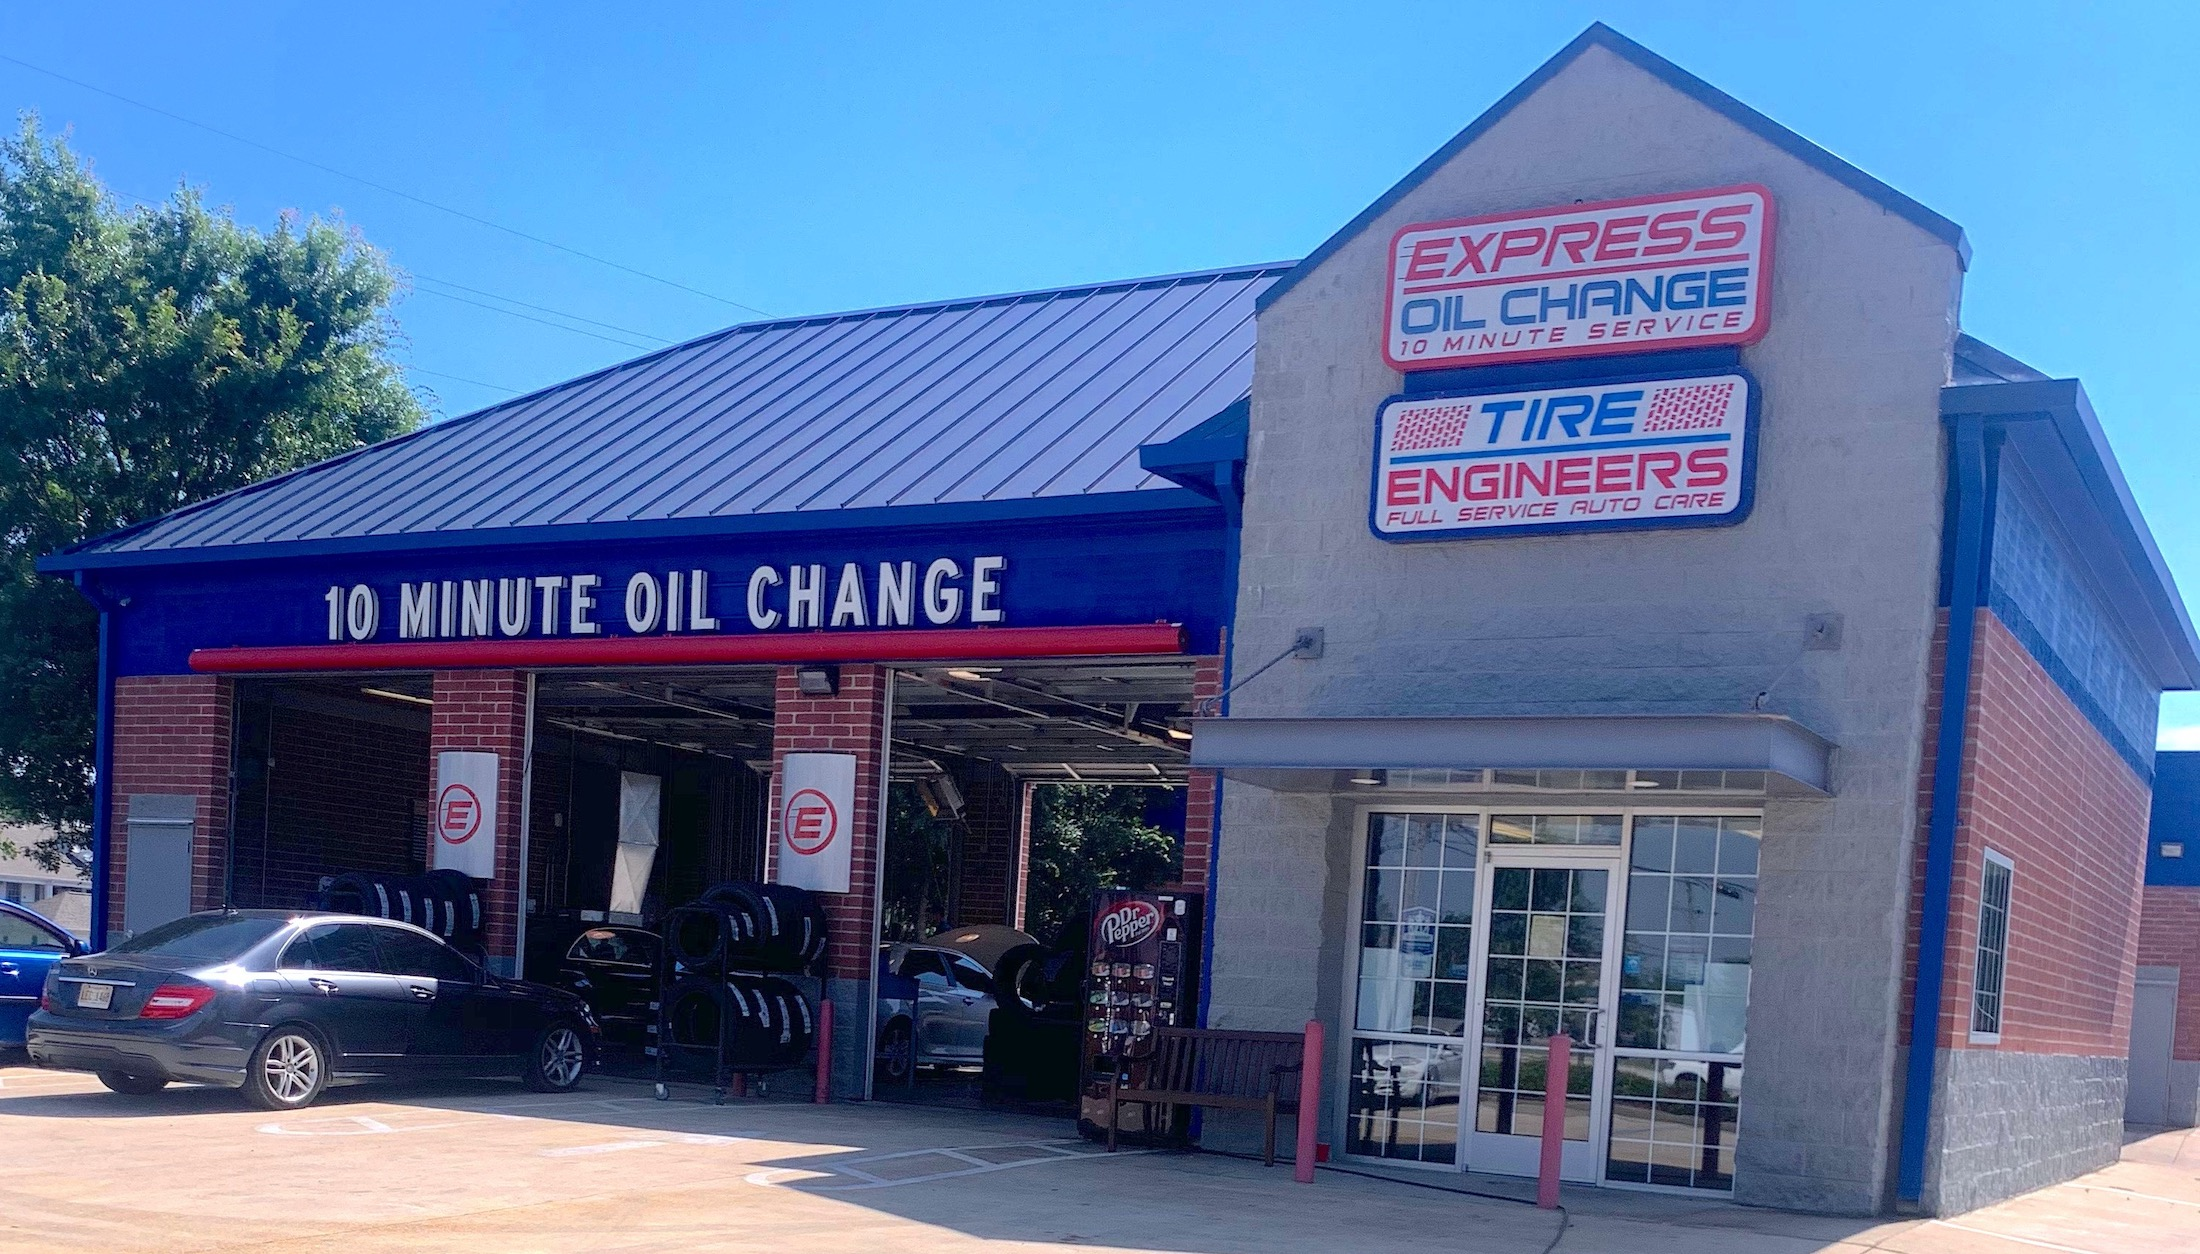 Express Oil Change & Tire Engineers Tupelo, MS - Barnes Crossing store